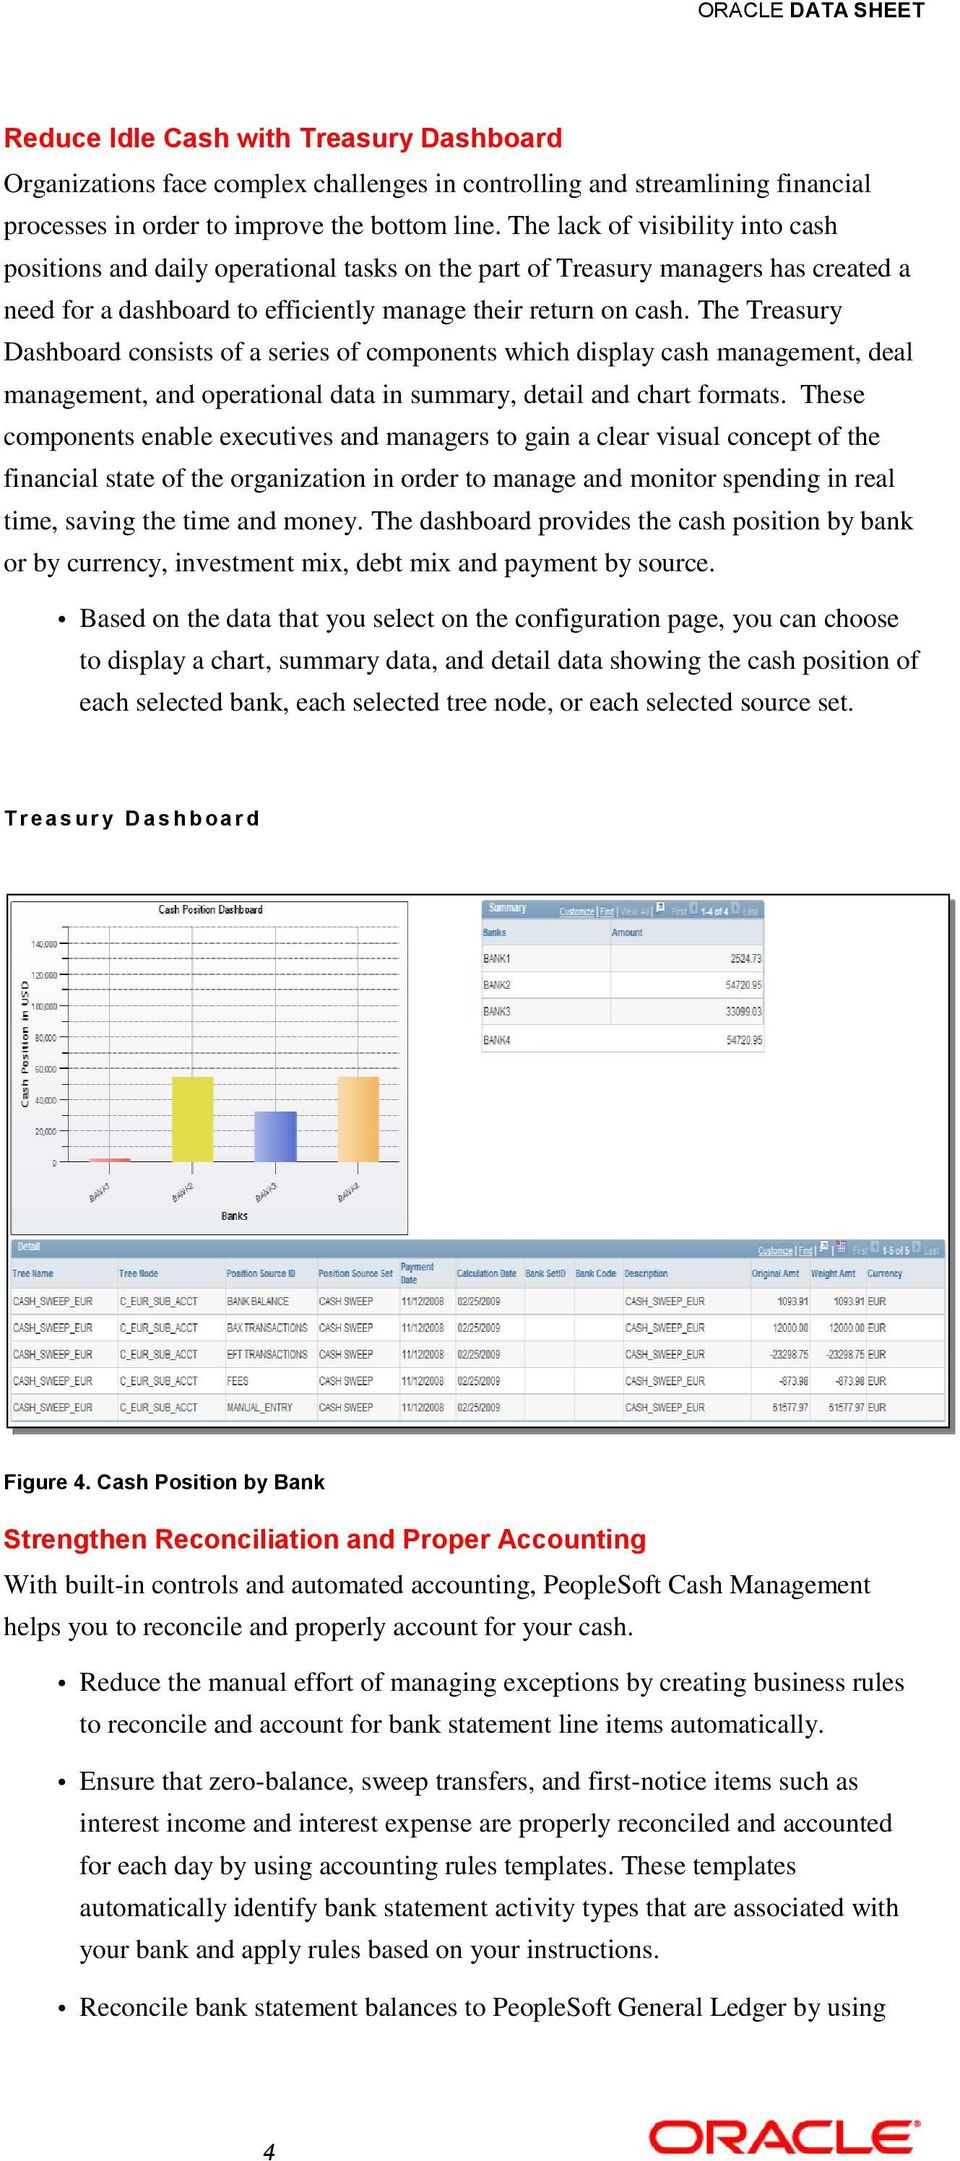 The Treasury Dashboard consists of a series of components which display cash management, deal management, and operational data in summary, detail and chart formats.